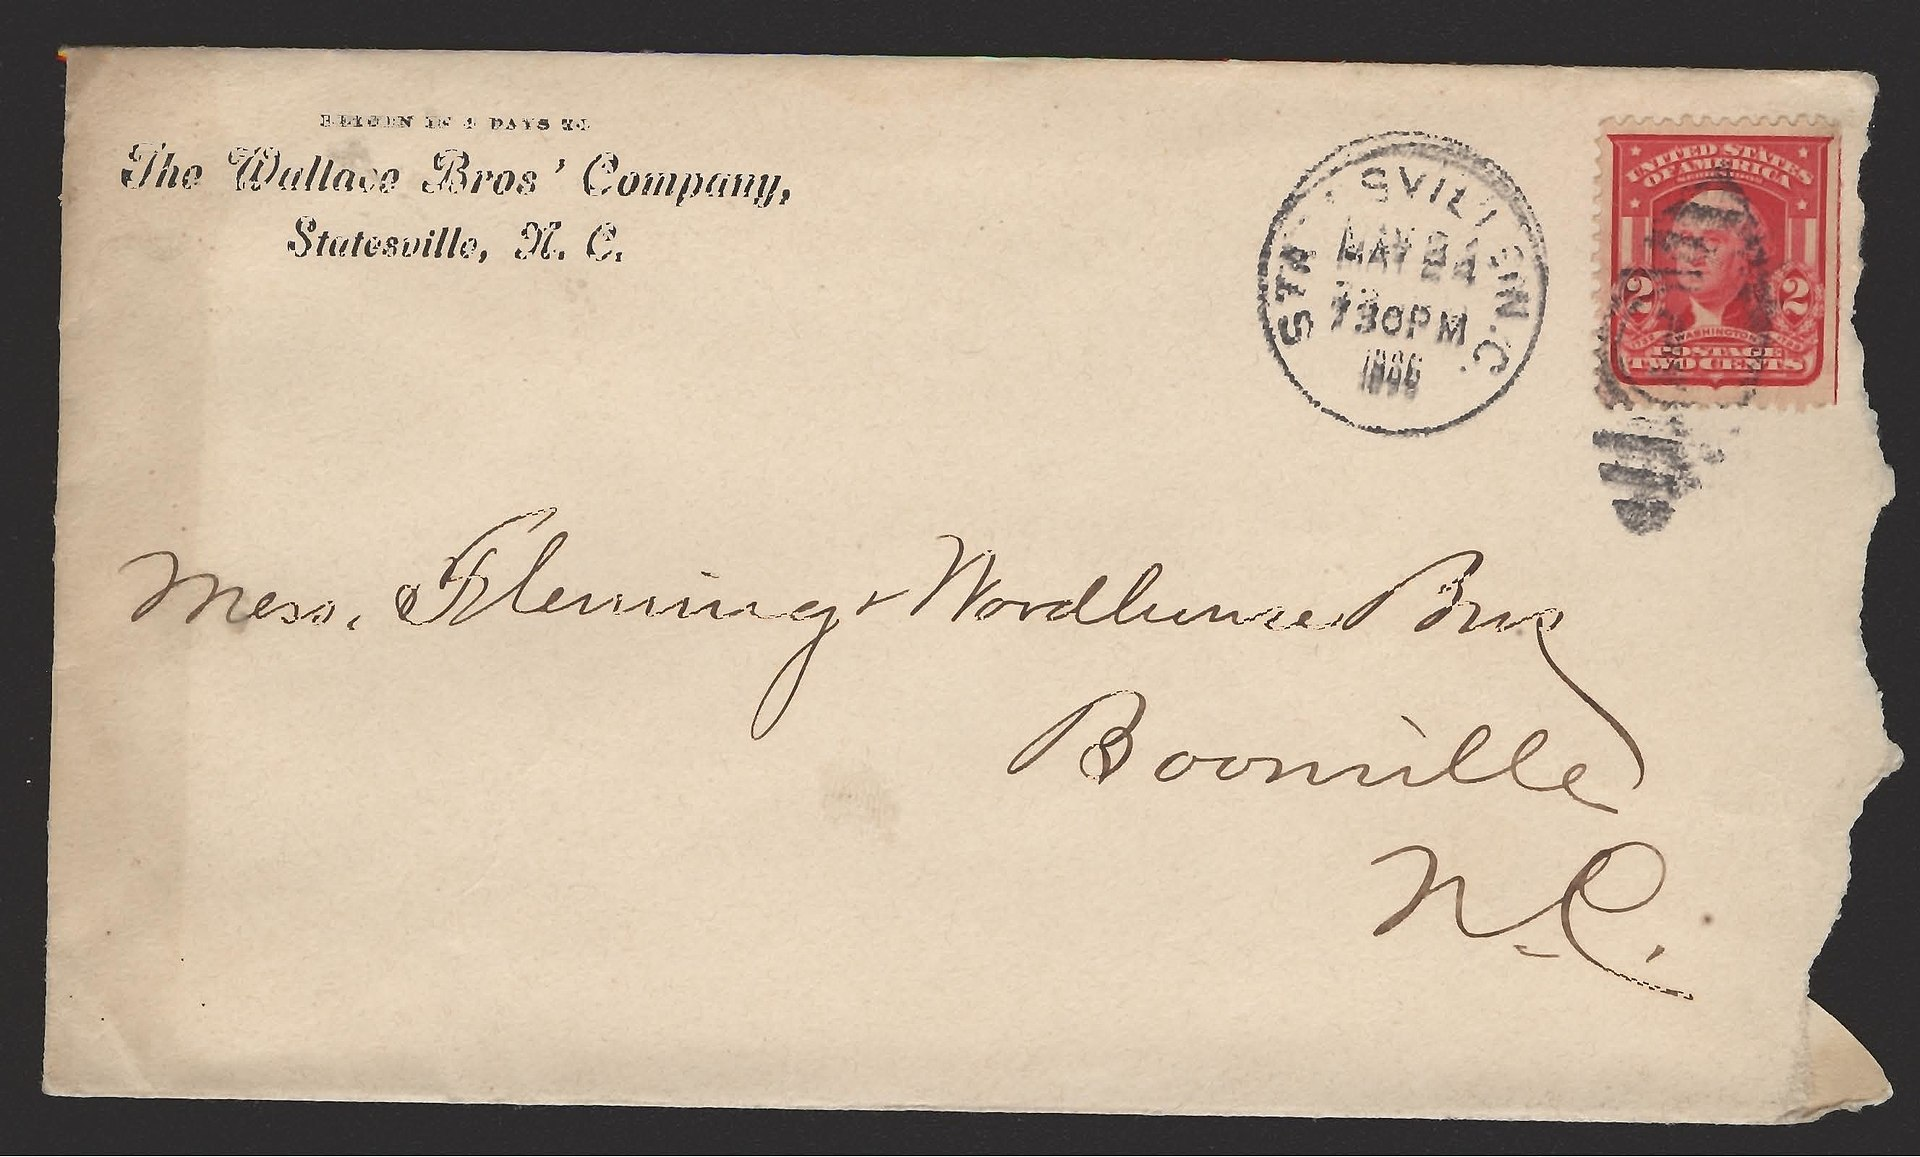 1920px-Envelope_-_Boonville_Address-000 Letter Template With Fold Marks For Envelopes A Window on